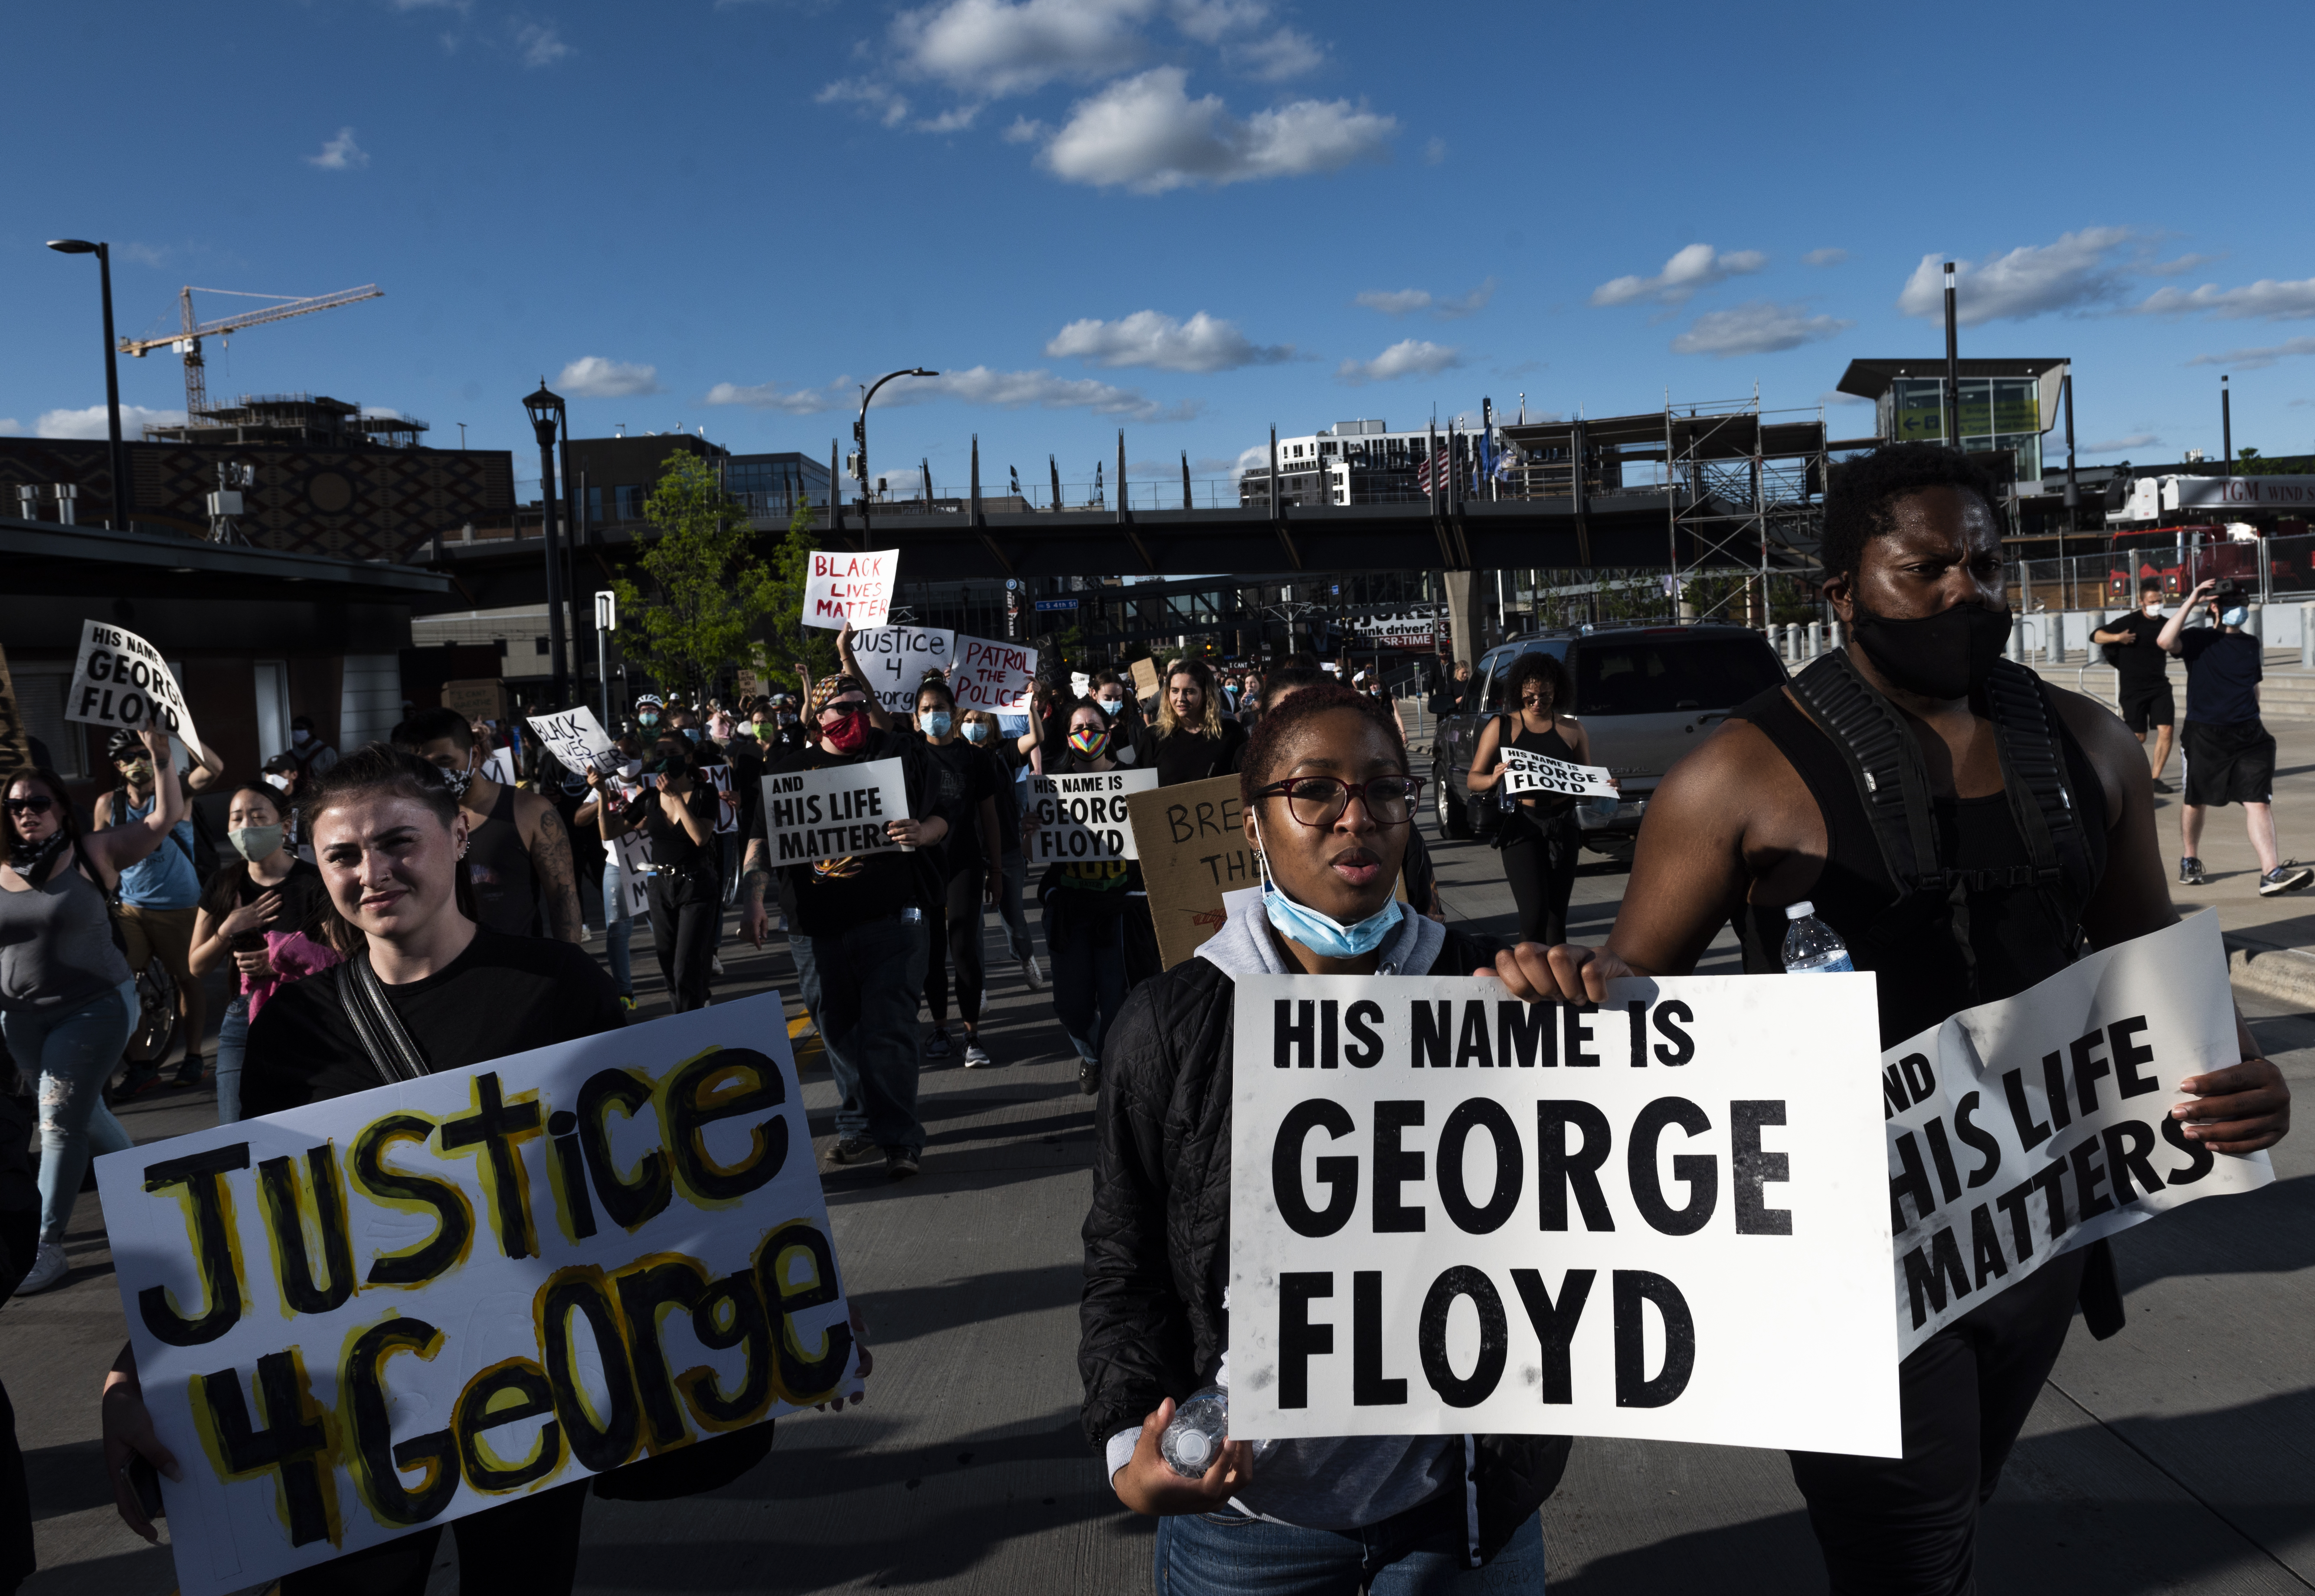 Protesters march by U.S. Bank Stadium in response to the police killing of George Floyd on May 29, 2020 in Minneapolis, Minnesota. Demonstrations and protests have been ongoing since Floyd's death in police custody on Monday. (Photo by Stephen Maturen/Getty Images)